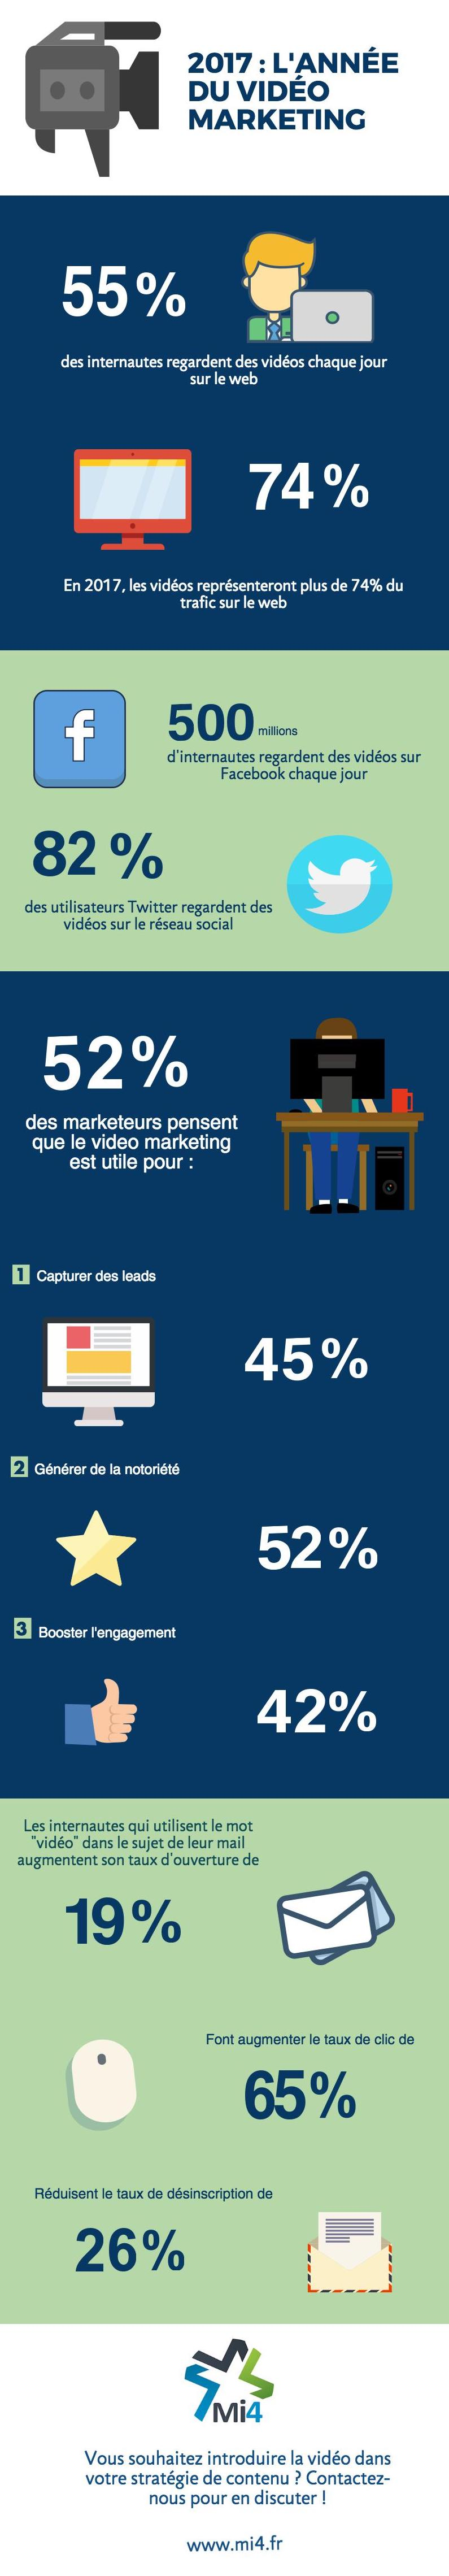 Infographie vidéo marketing 2017